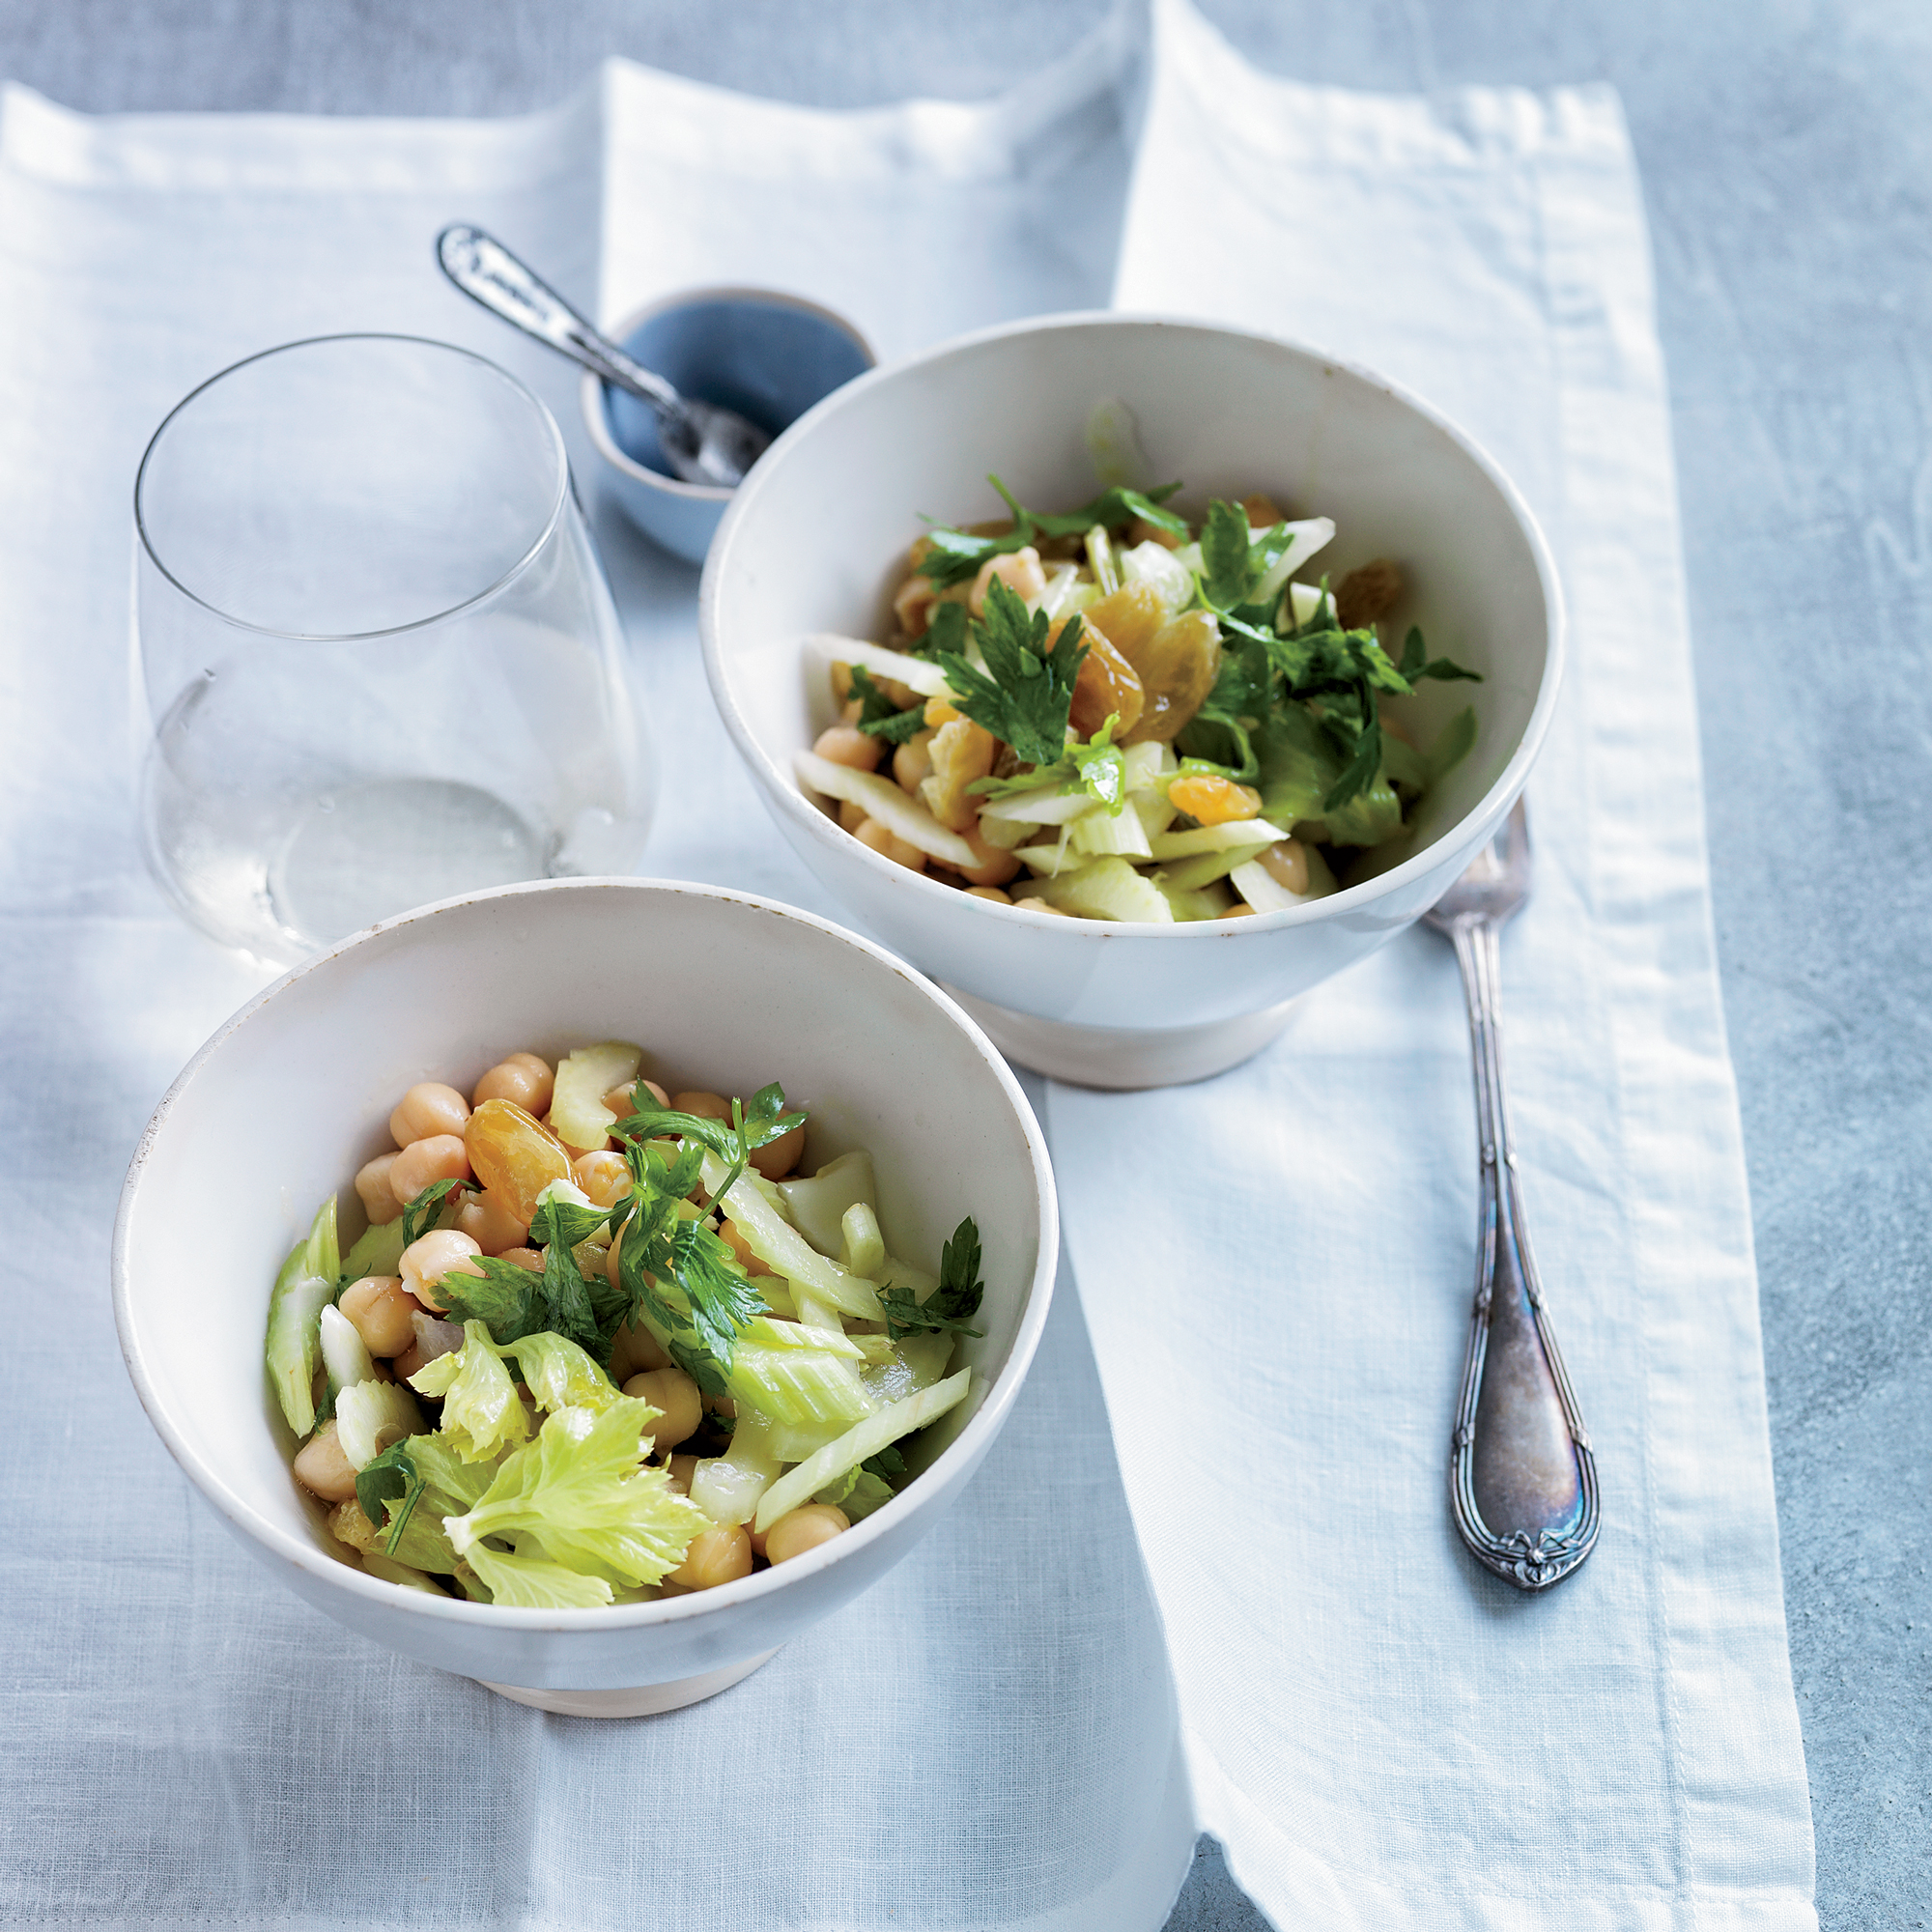 Chickpea Salad with Celery, Golden Raisins and Lemon